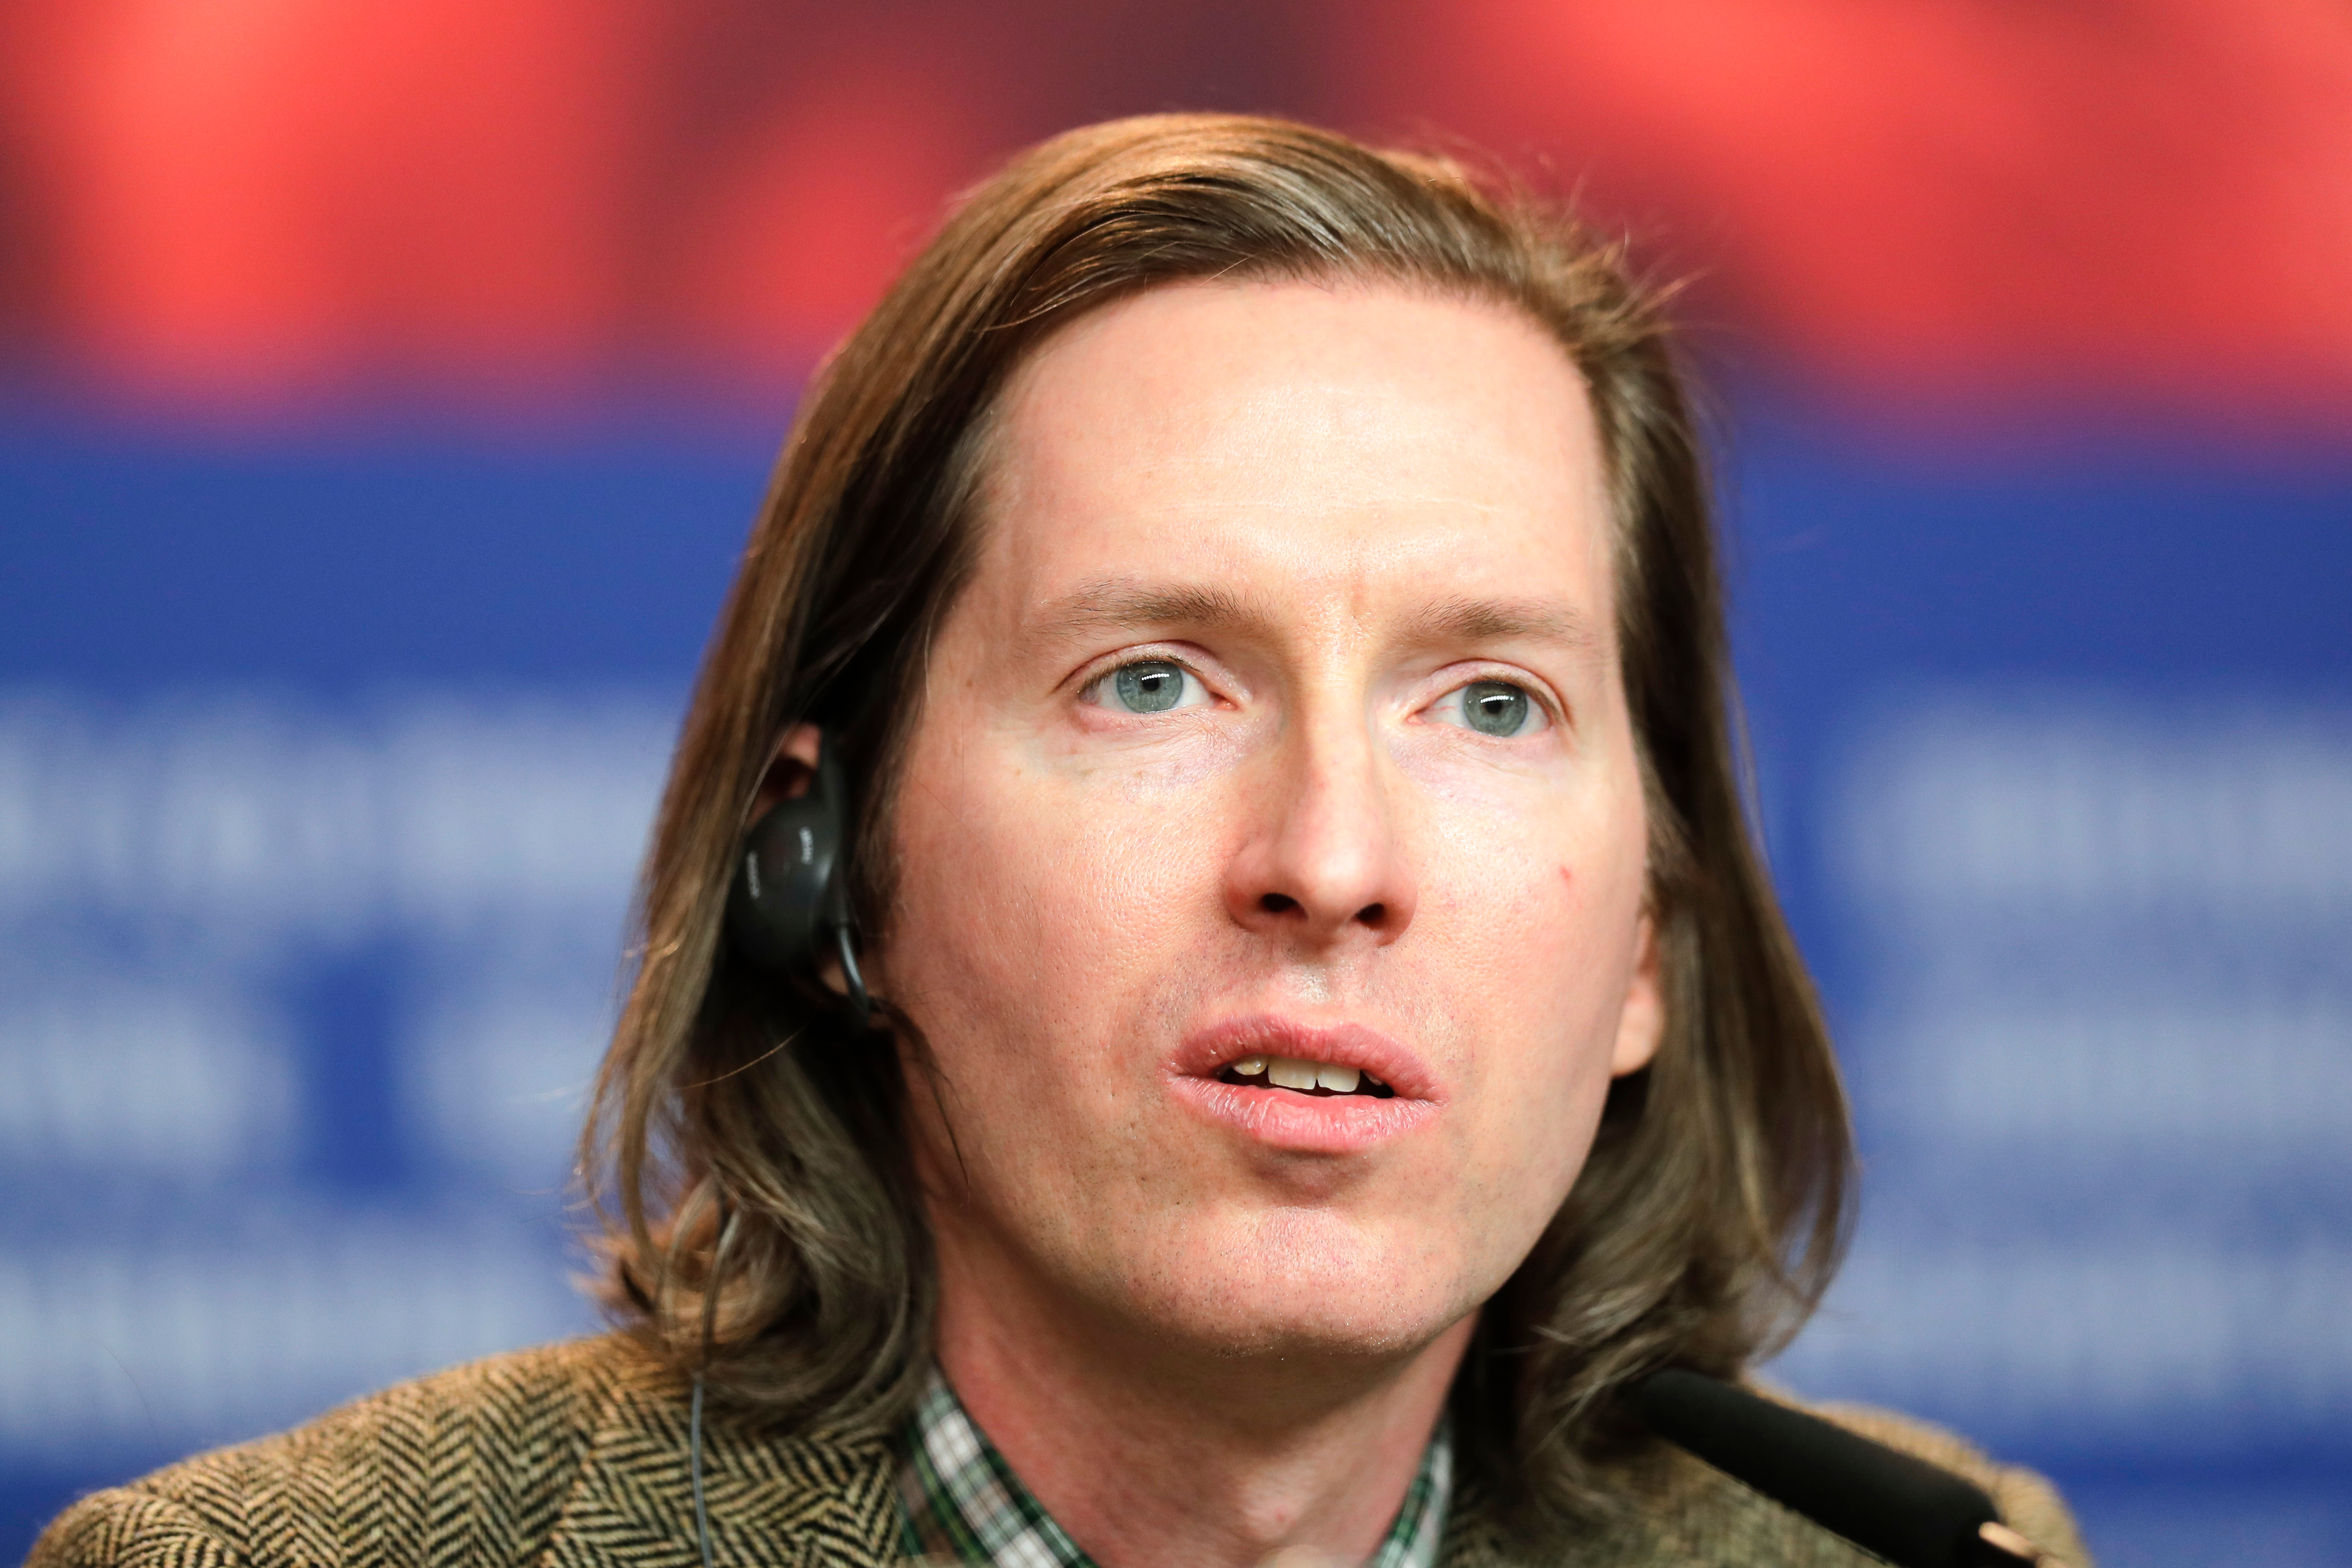 Wes Anderson Talks 'The French Dispatch' Plot, Says Film Could Be Released by End of Year